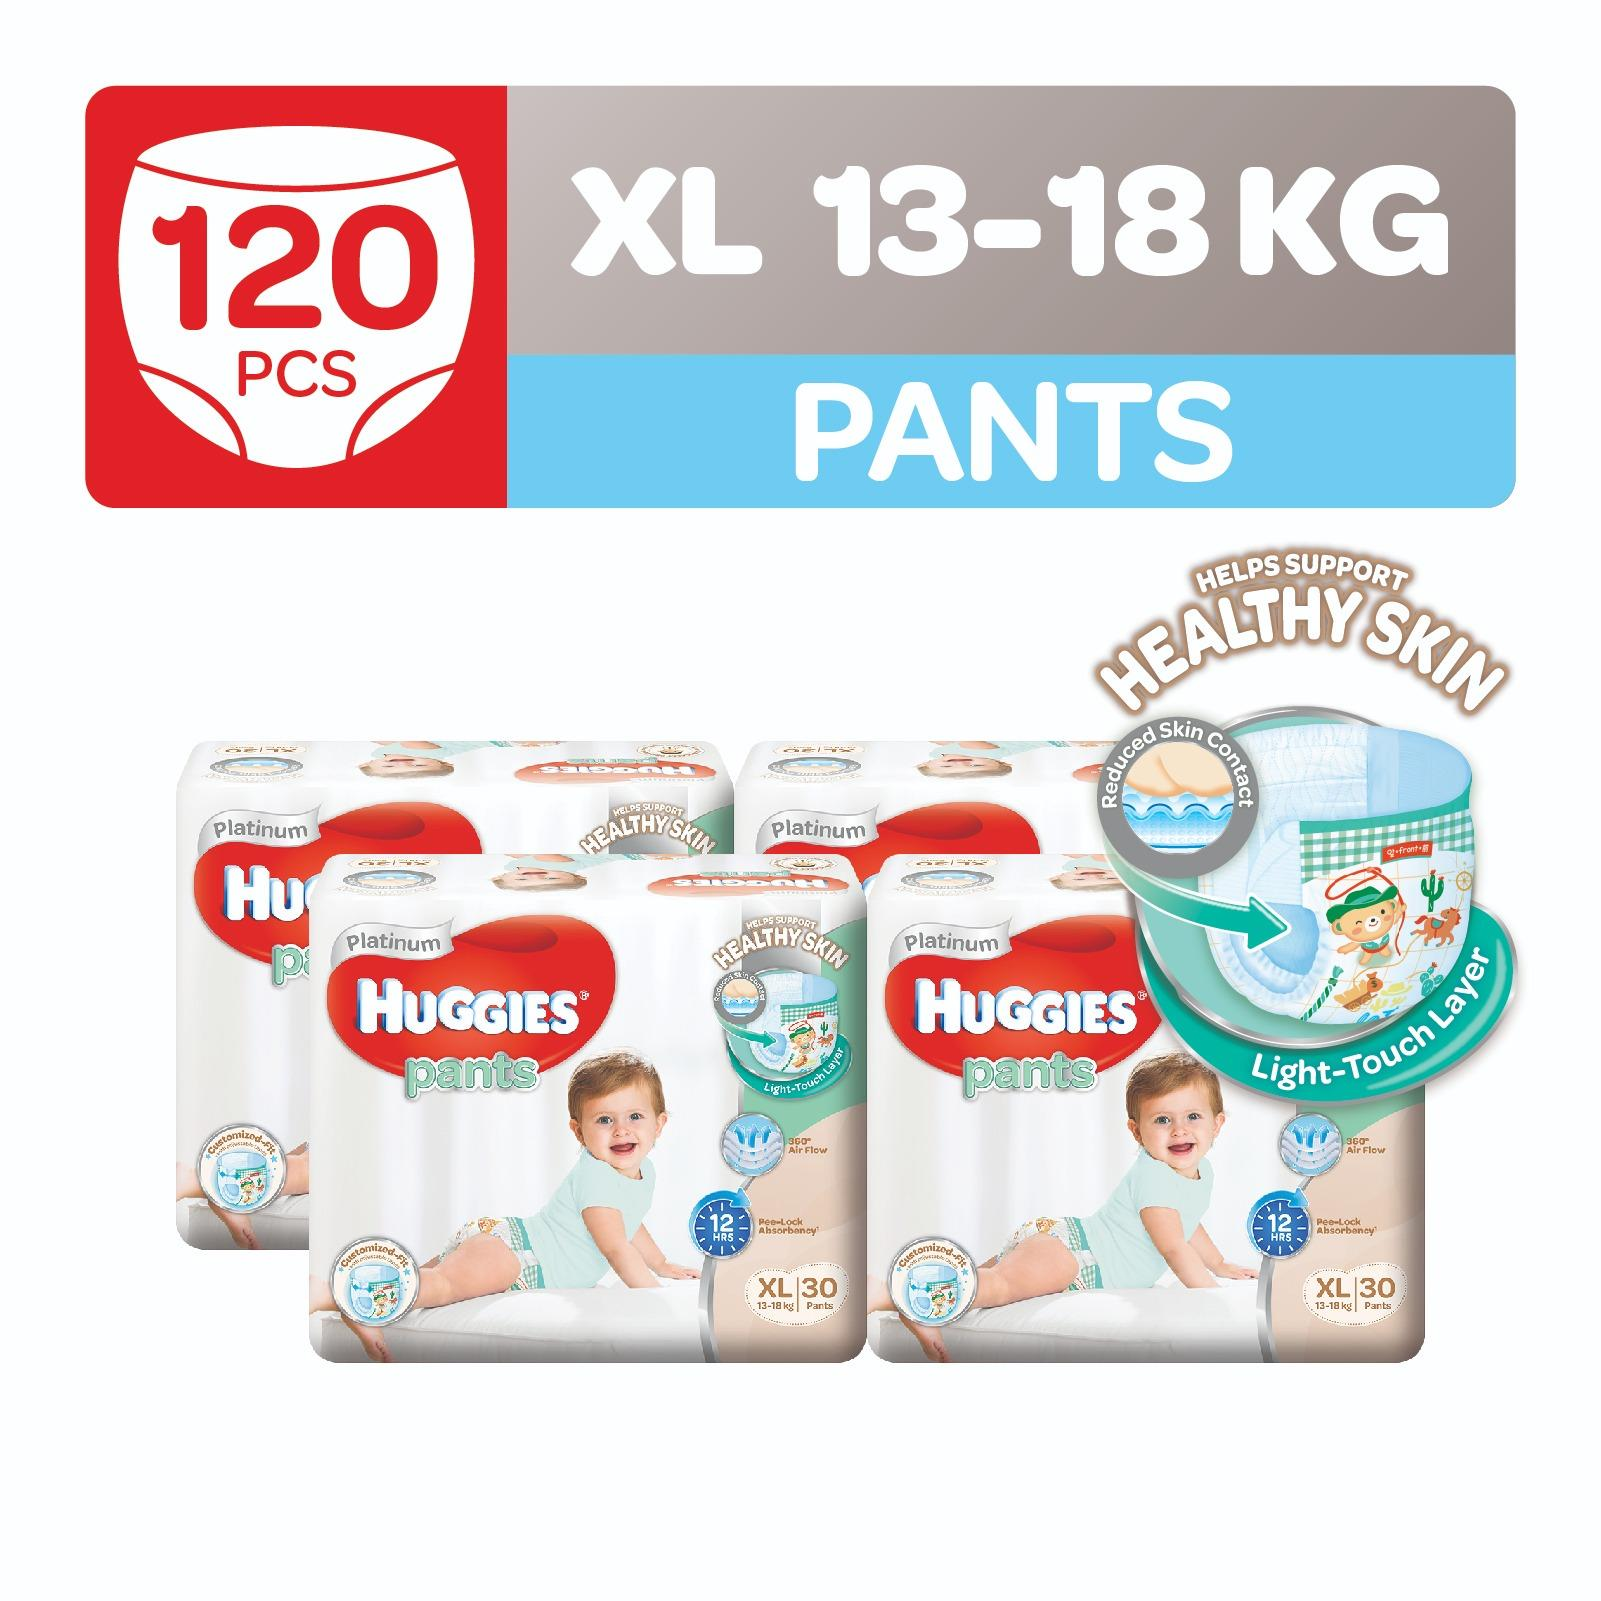 Who Sells Huggies Platinum Pants Xl Case Cheap